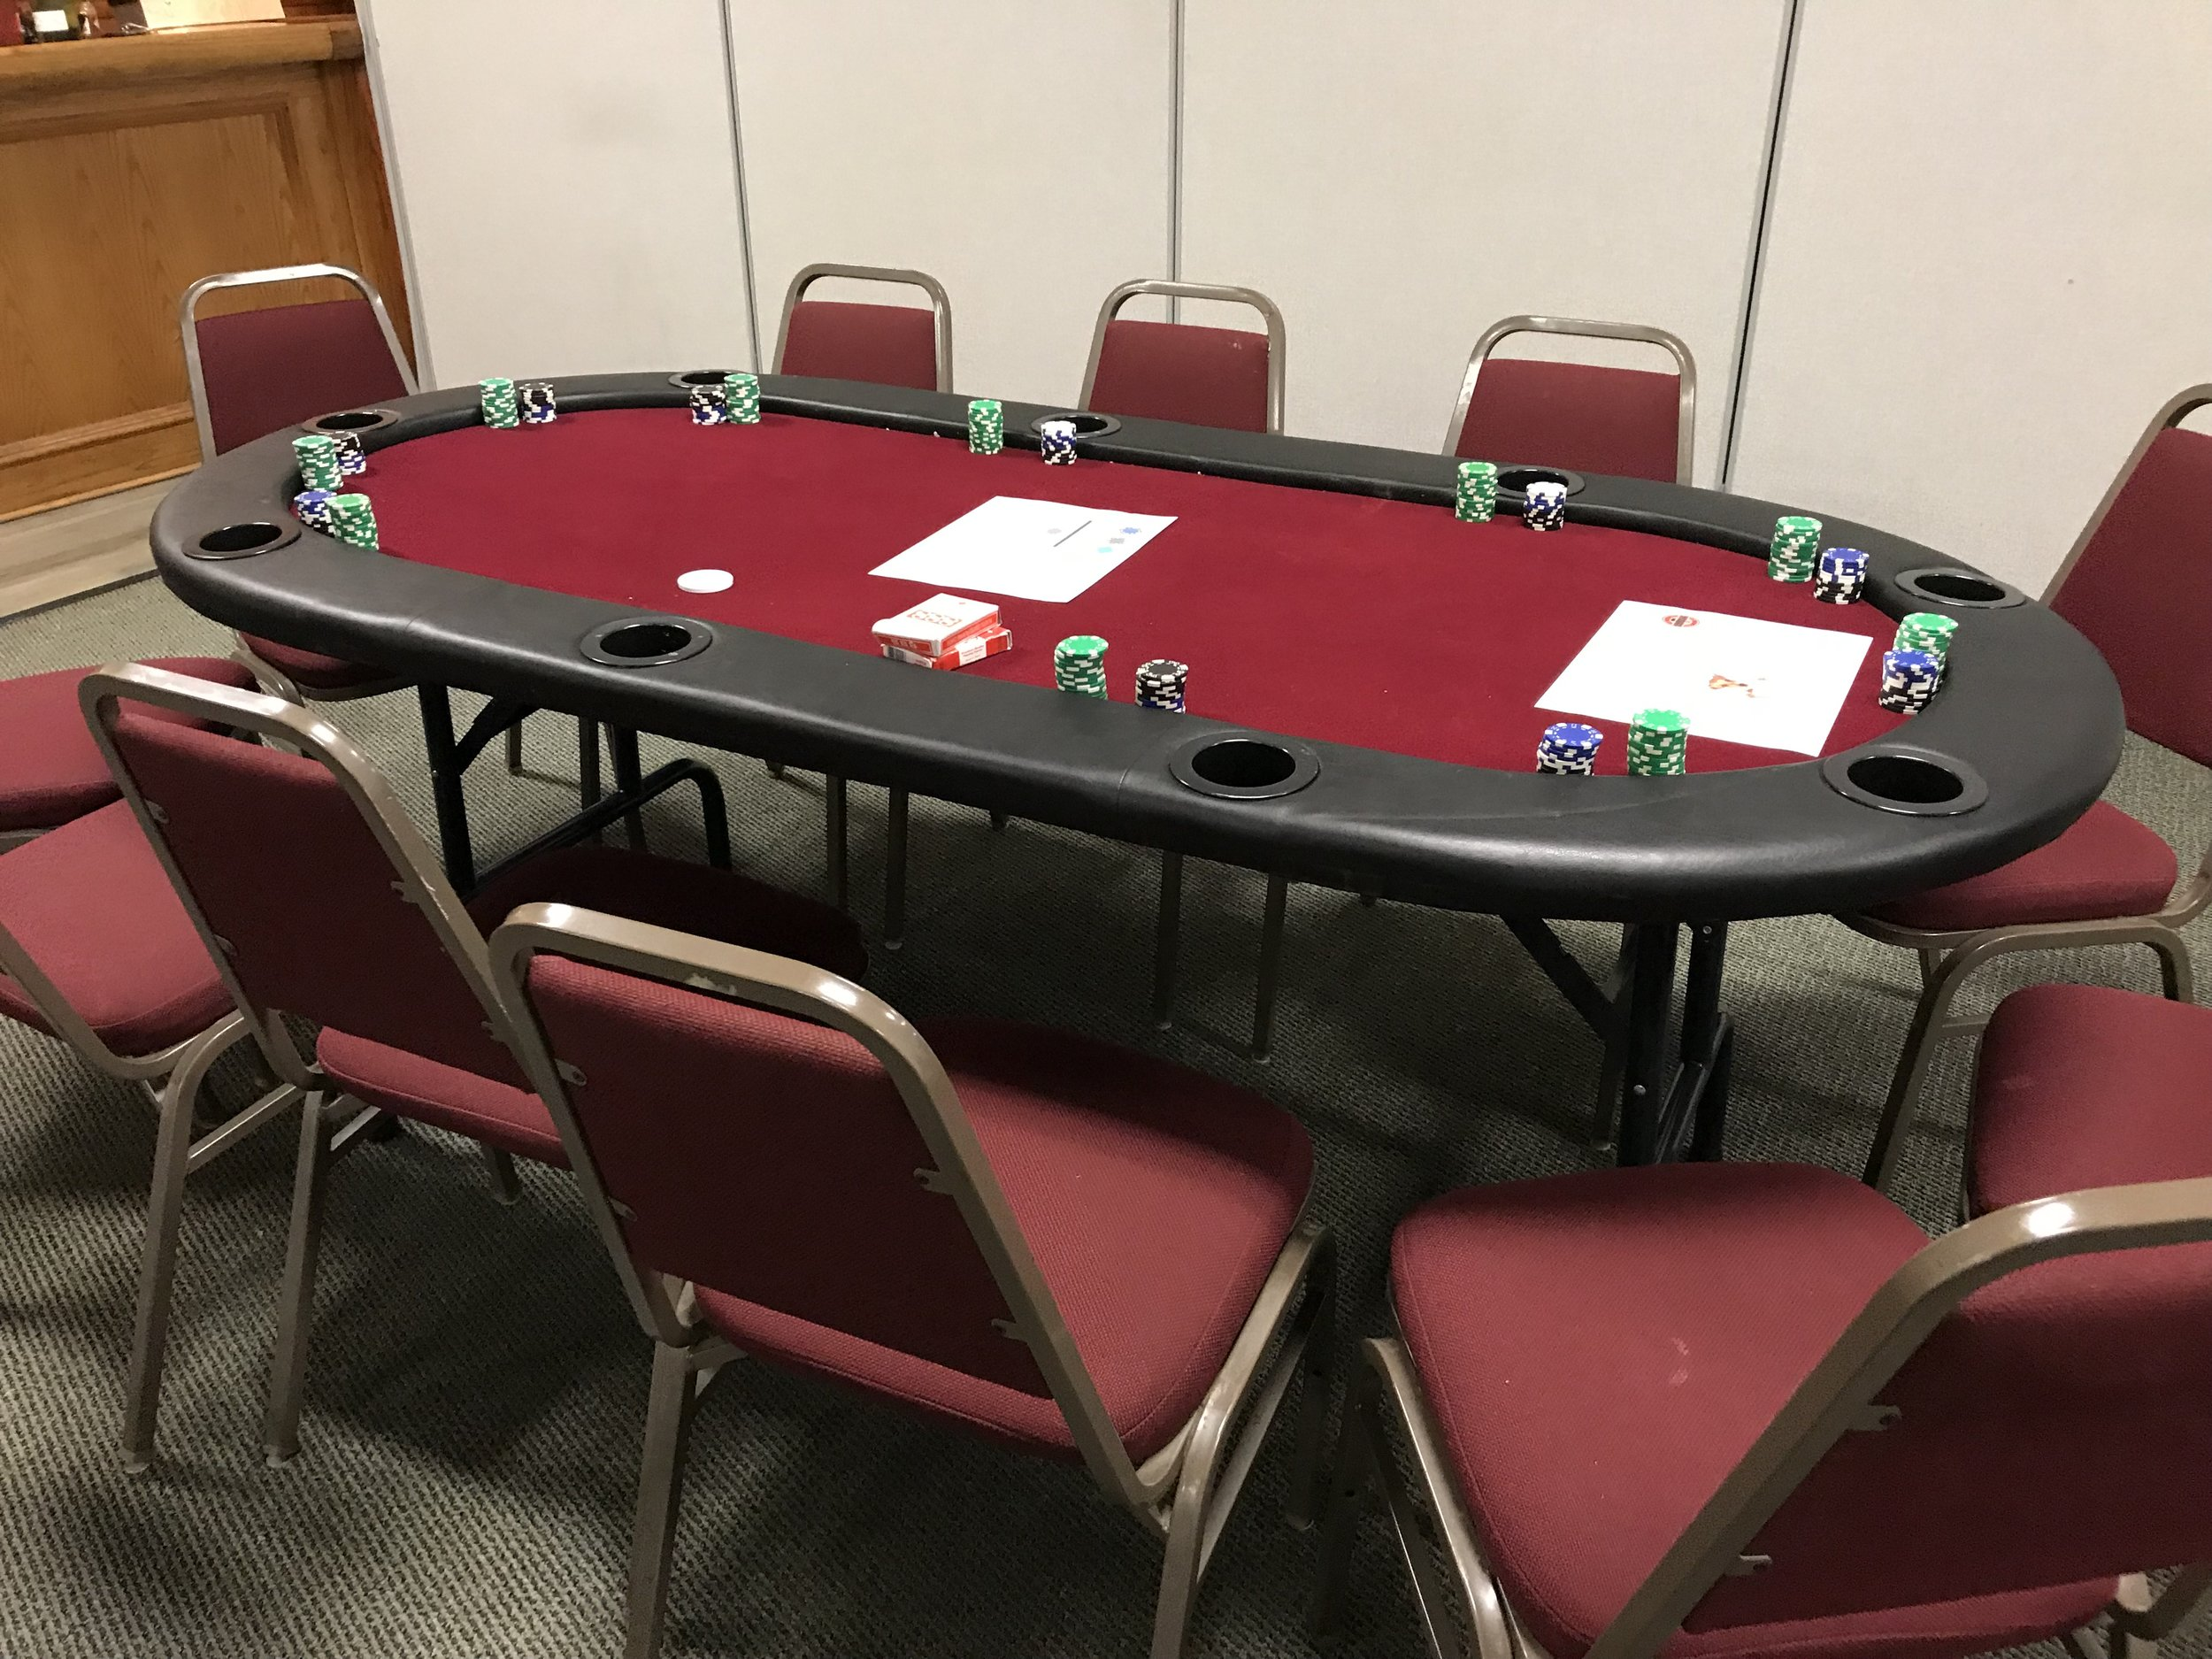 POKER: Each poker table can hold nine players in addition to the dealer. Typically, guests play Texas Hold'em. We can also organize a separate poker tournament for your event.